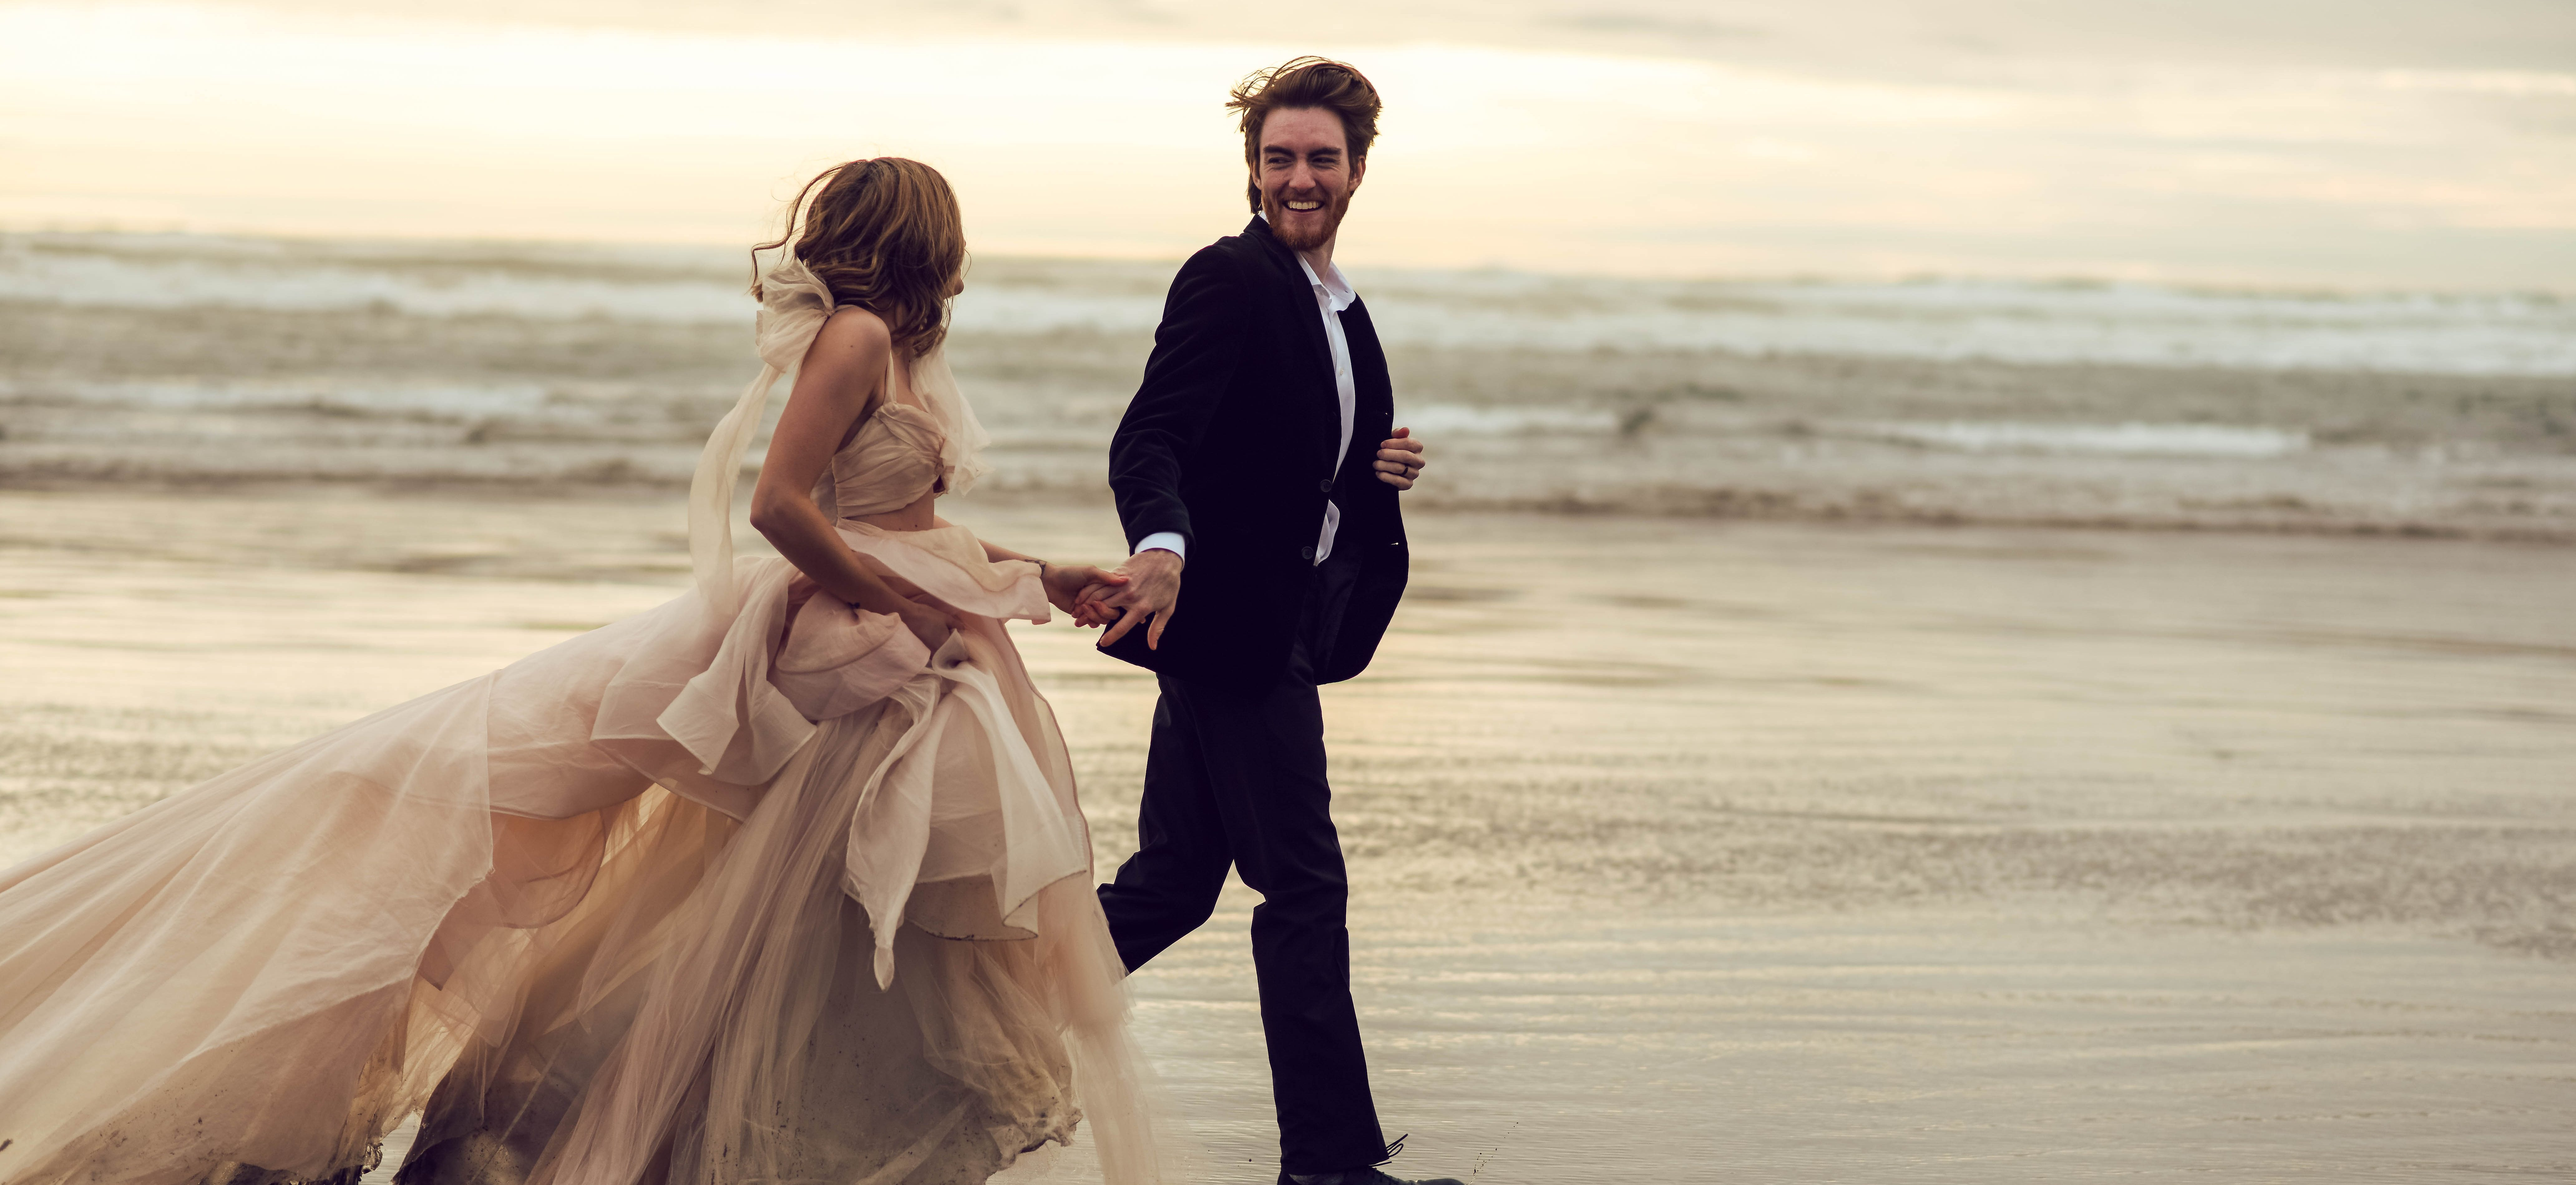 bride and groom run down a beach smiling with washington wedding photography by adina stiles